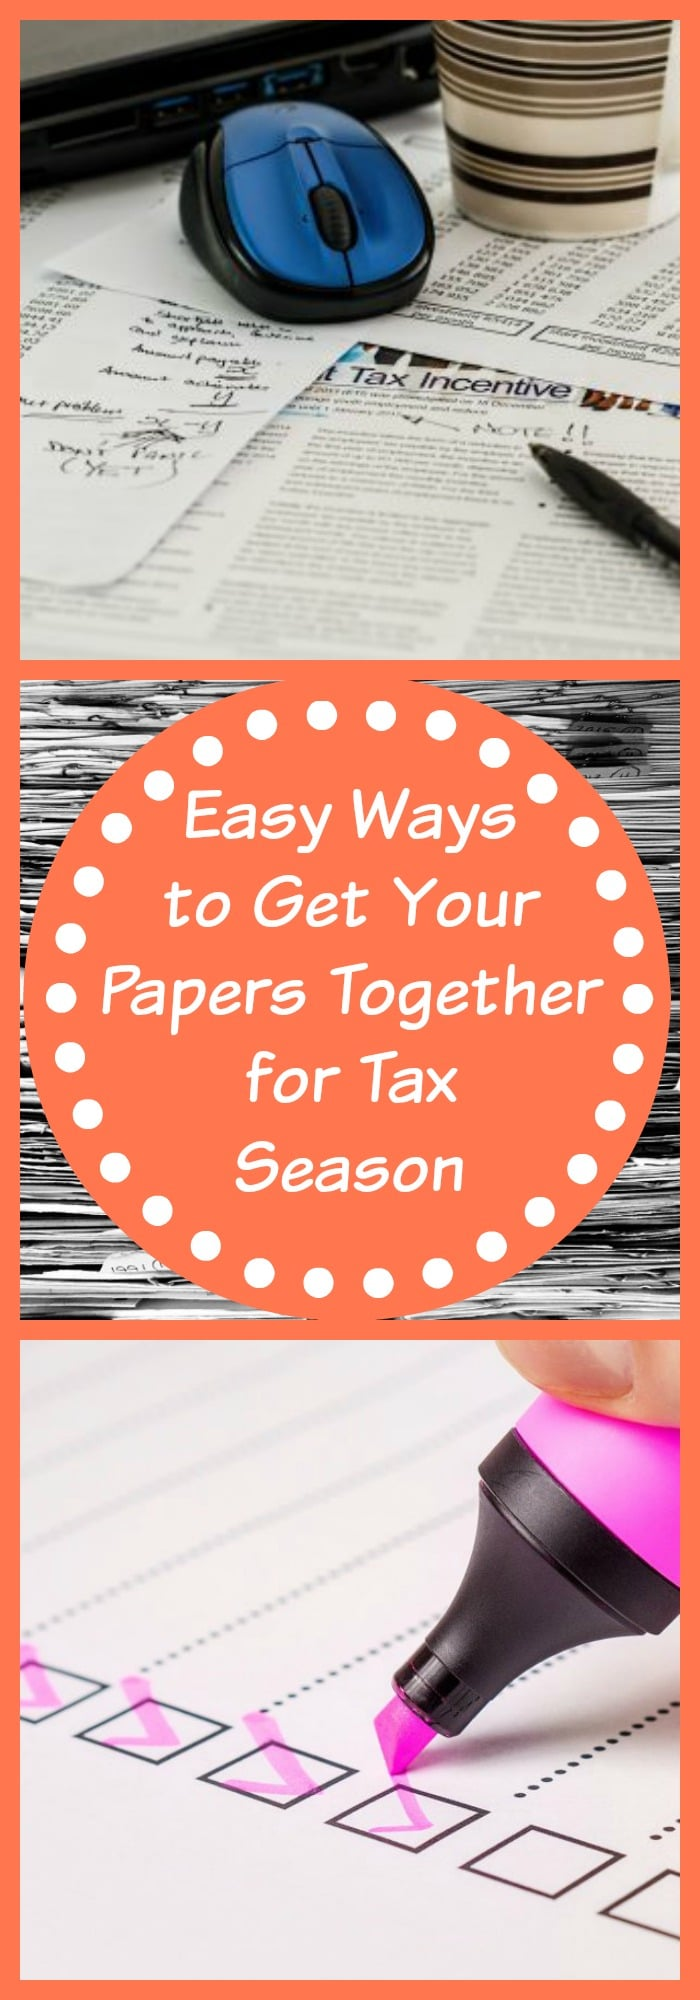 Easy Ways to Get Your Papers Together for Tax Season